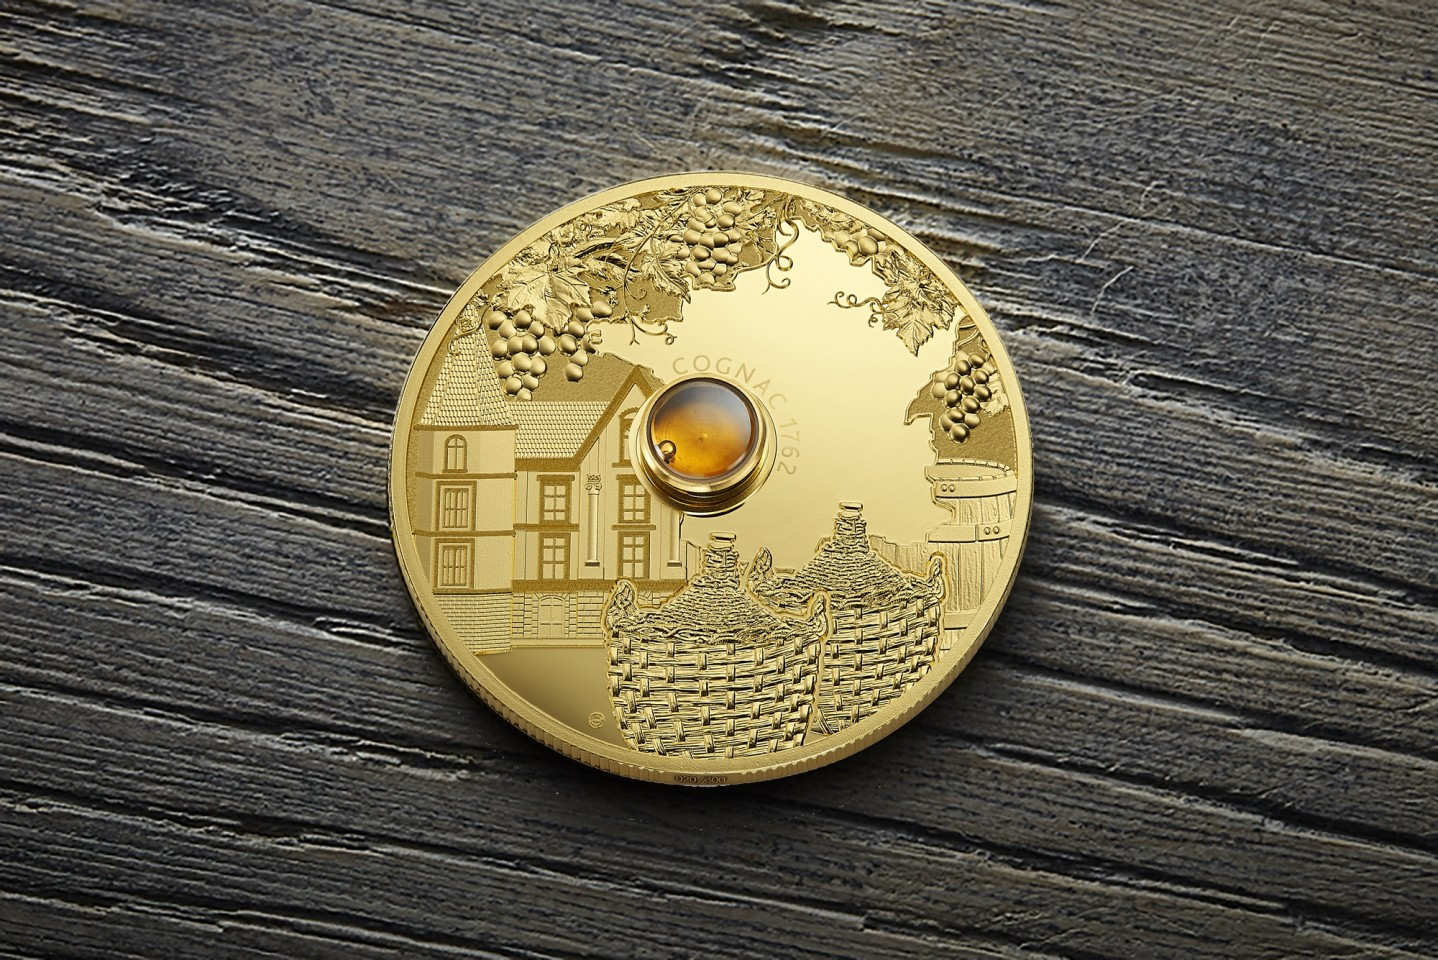 Lux Coin Company's Cognac Coin